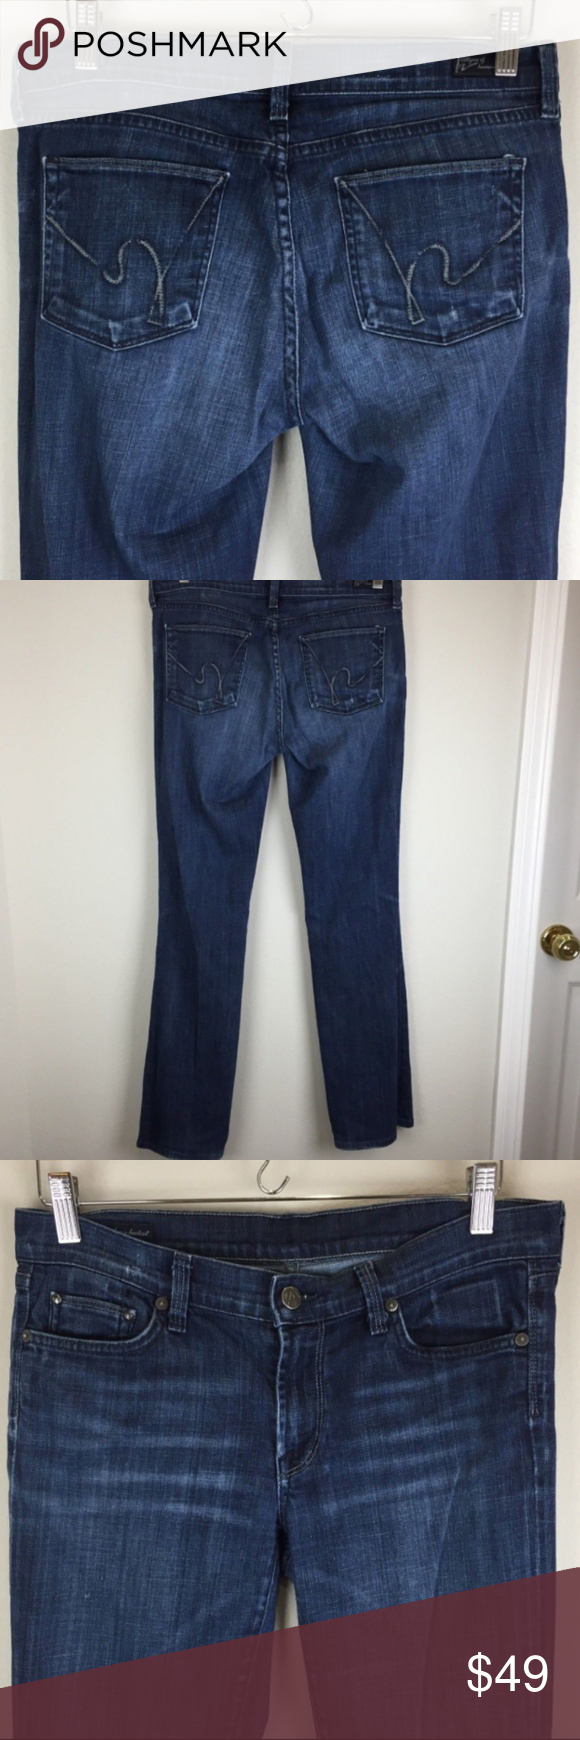 59b2bff7cbb COH Amber Stretch High Rise Bootcut Jeans Size 29 CITIZENS OF HUMANITY  Amber Stretch High Rise